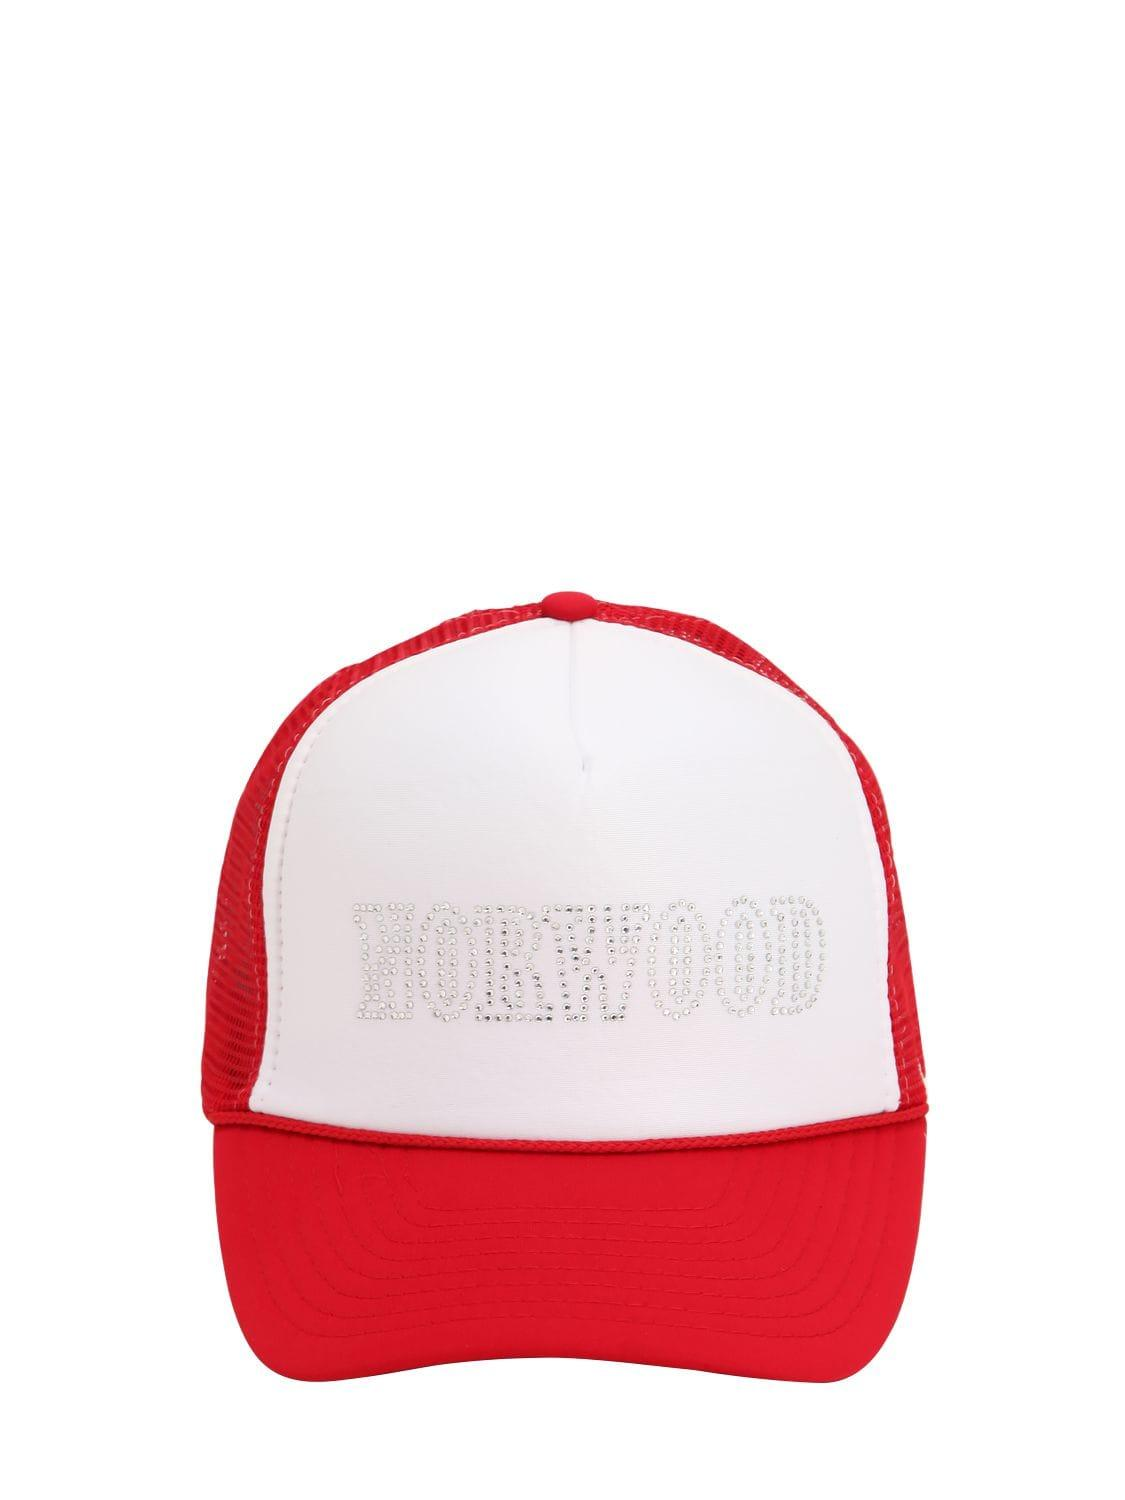 7990a8ee09b9 Lyst - NORWOOD CHAPTERS Norwood Cotton Trucker Hat in Red for Men